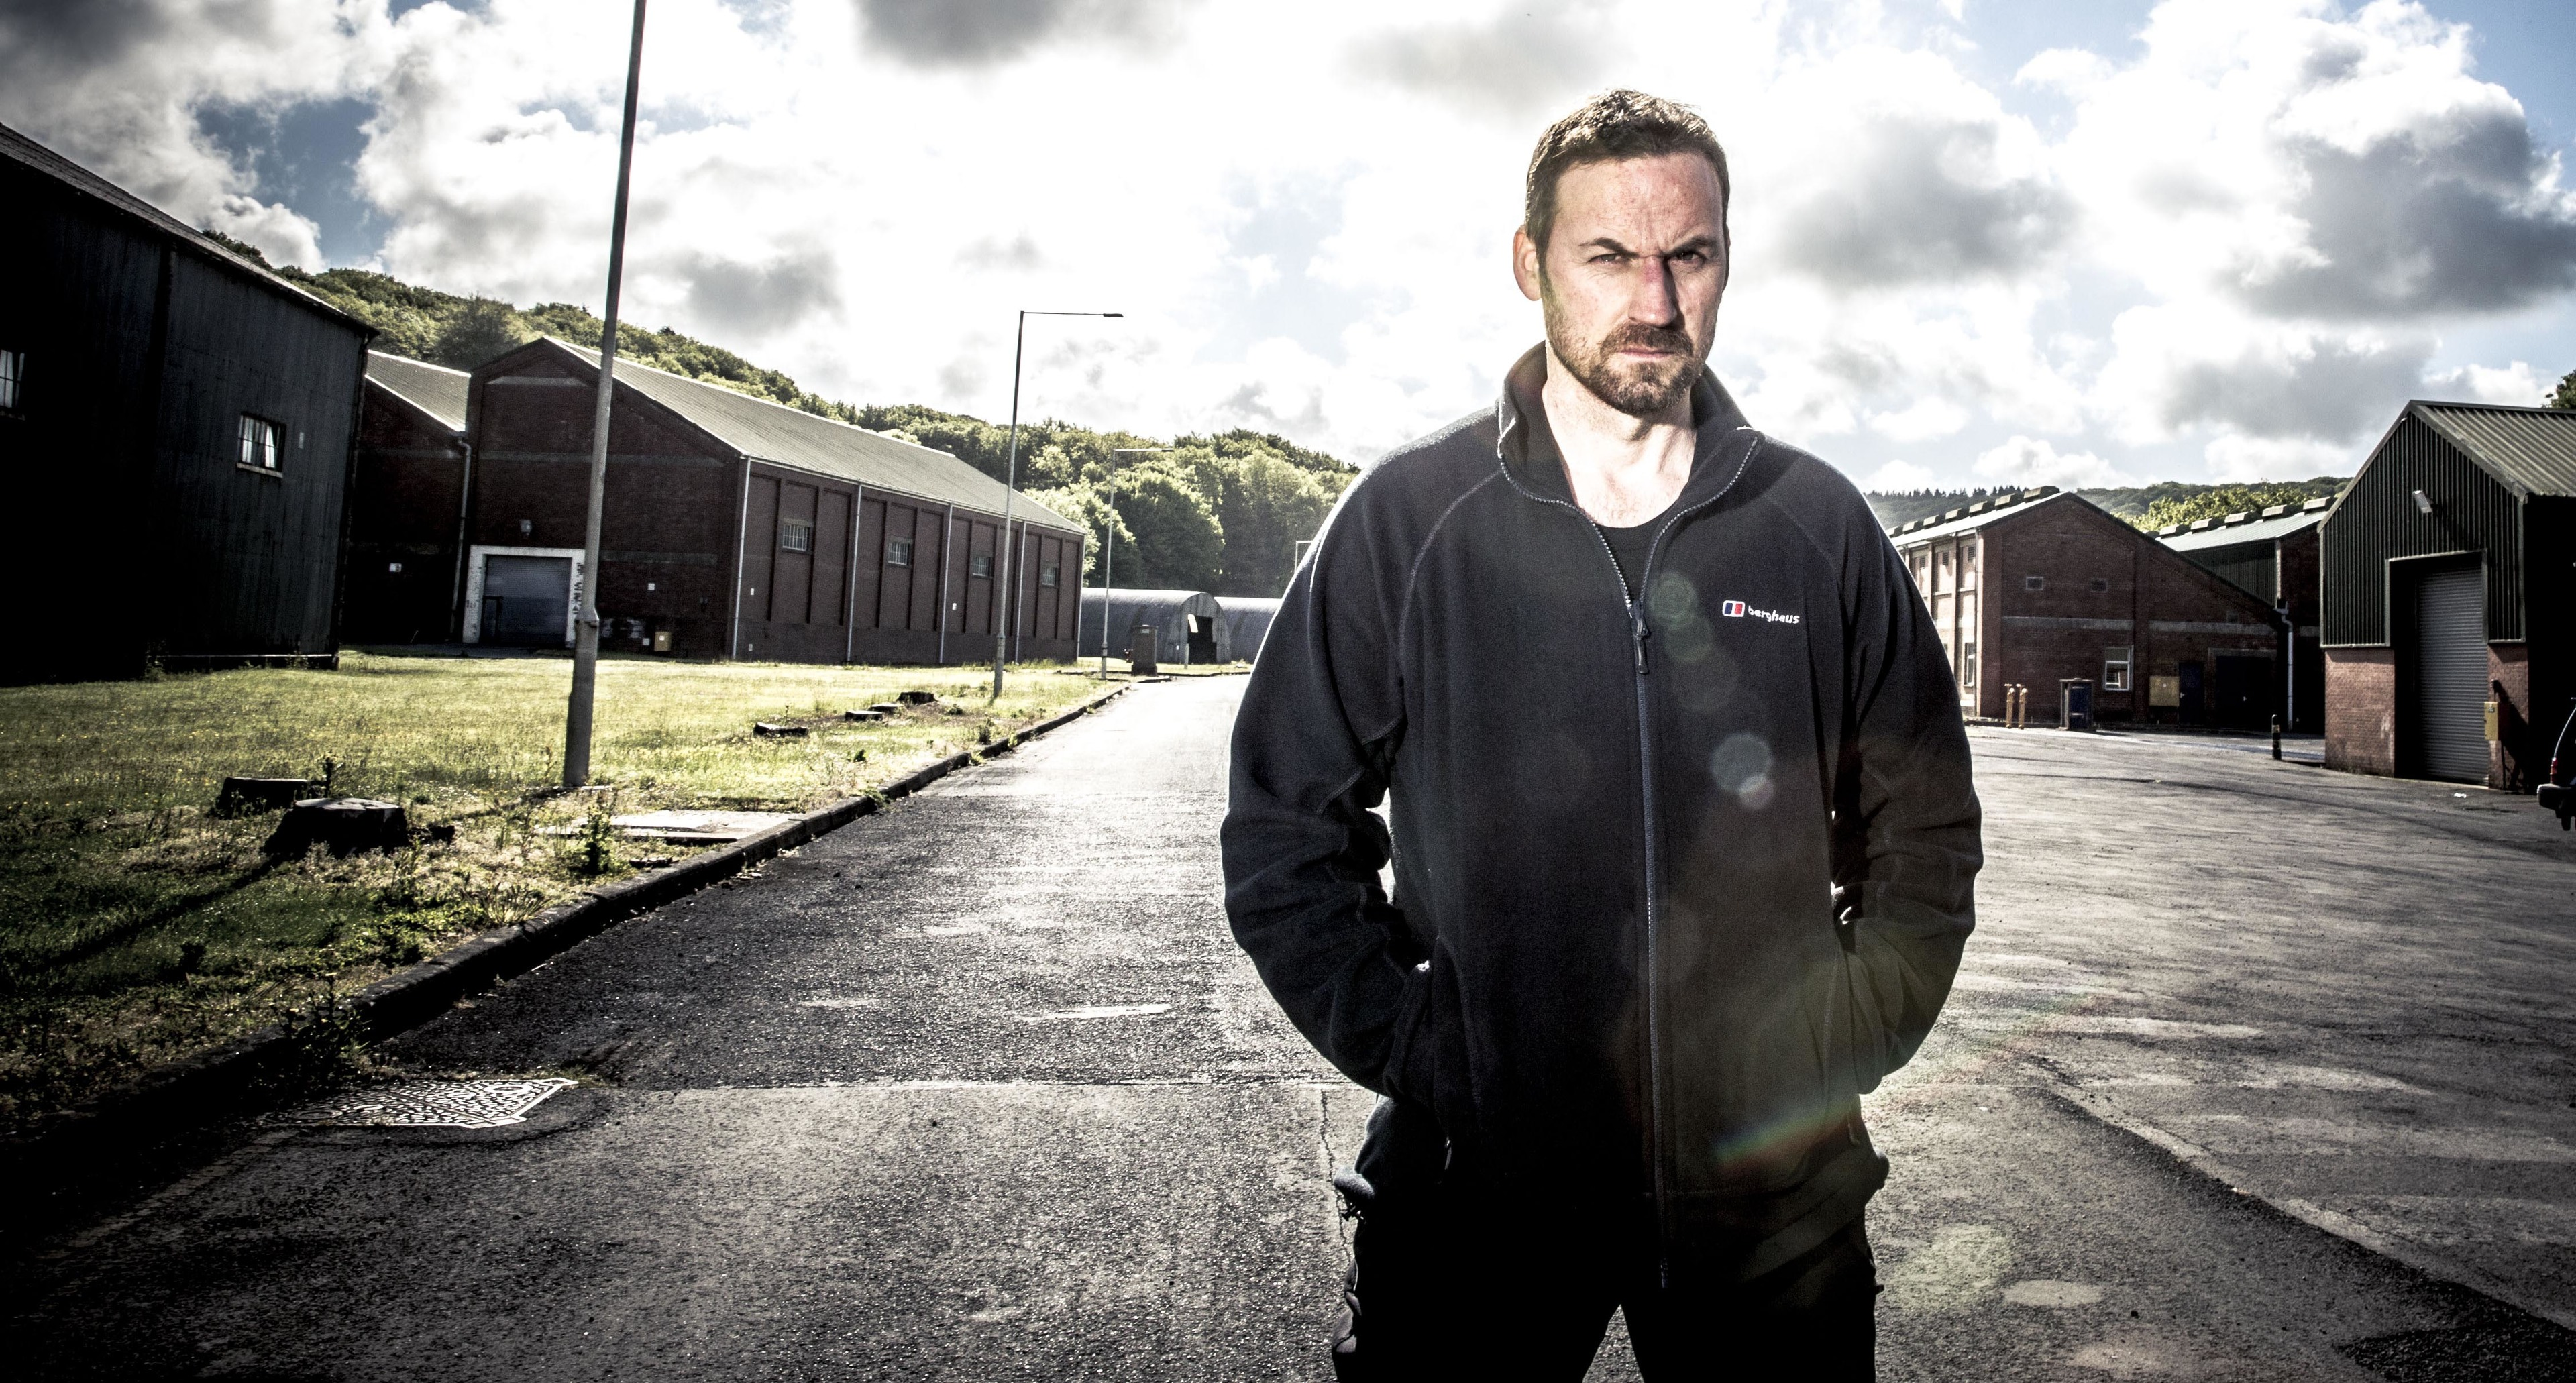 Sas Bad 24 Sas Veteran Colin Maclachlan Highlights Challenges Military